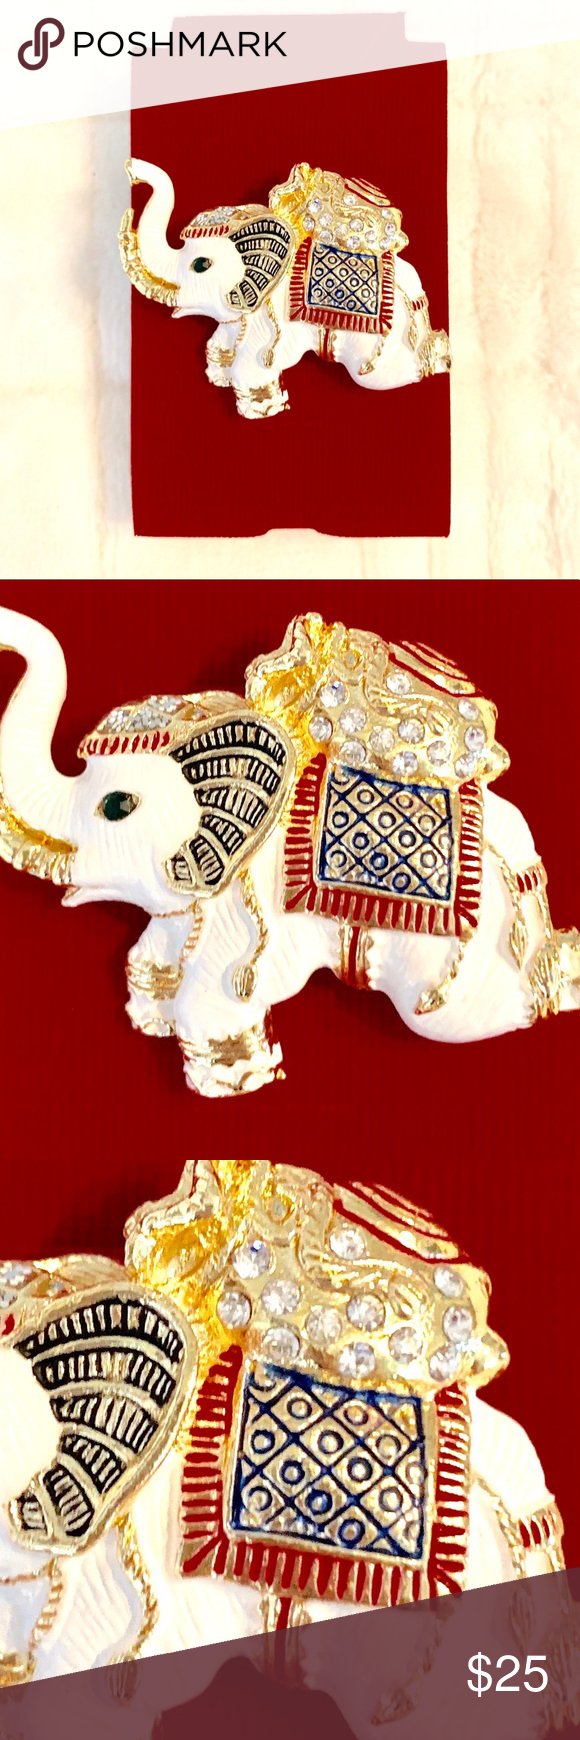 New Item Thailand Elephant Pin Red White Blue Elephant Pin Thailand Elephants Elephant